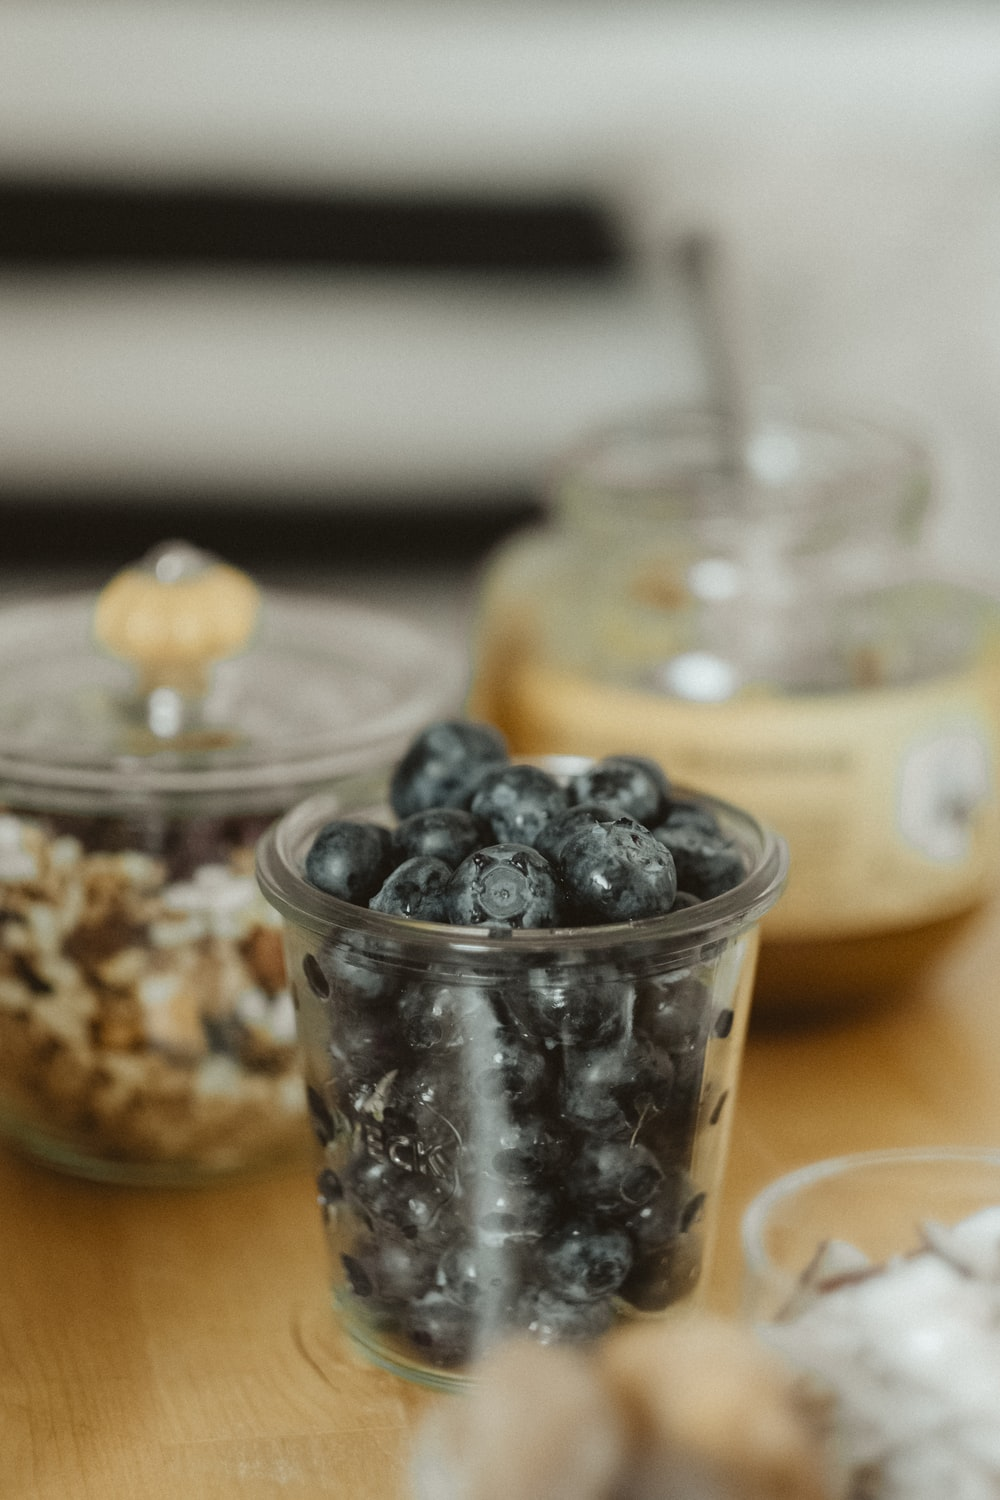 black berries with cup